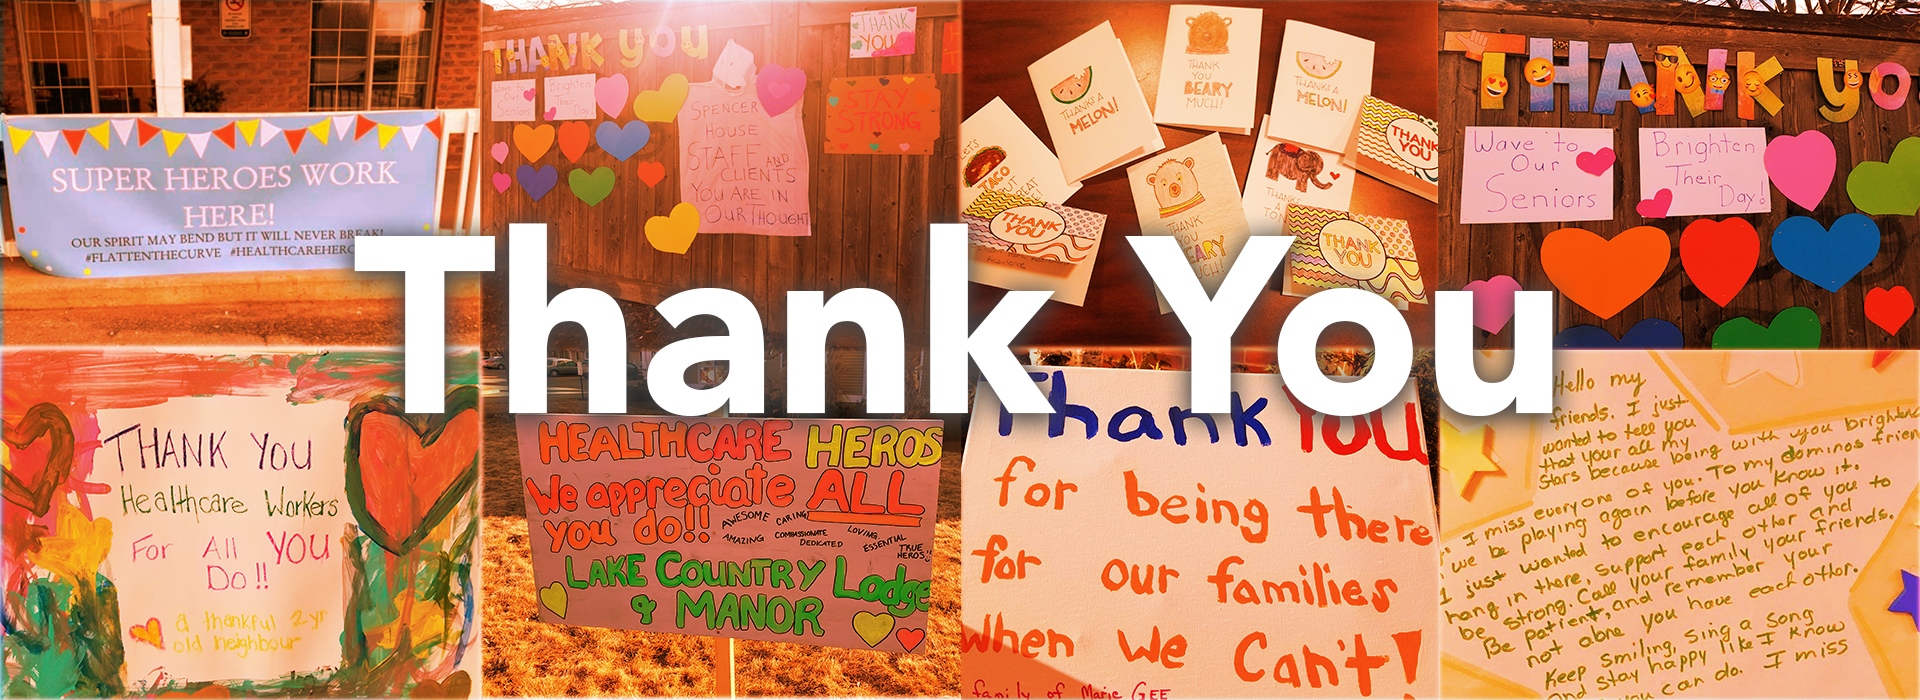 a collage of all the thank you messages for the team members